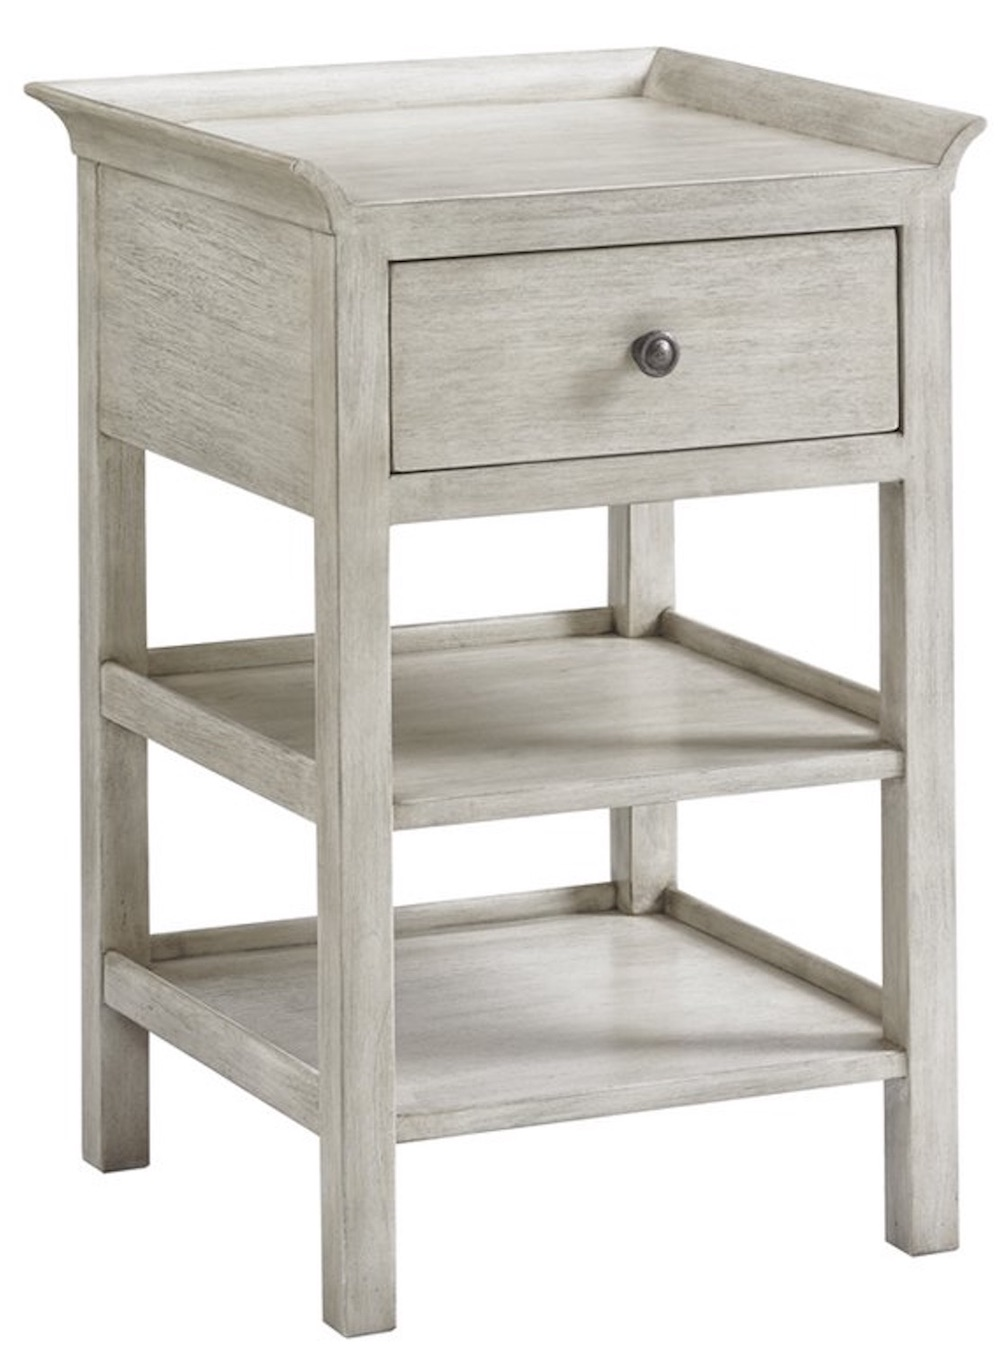 21 Farmhouse Nightstands for Nighttime Necessities Oyster Bay Drawer Pelham Nightstand #Farmhouse #NightStands #FarmhouseNightstands #RusticDecor #CountryDecor #FarmhouseDecor #VintageInspired #BedsideTables